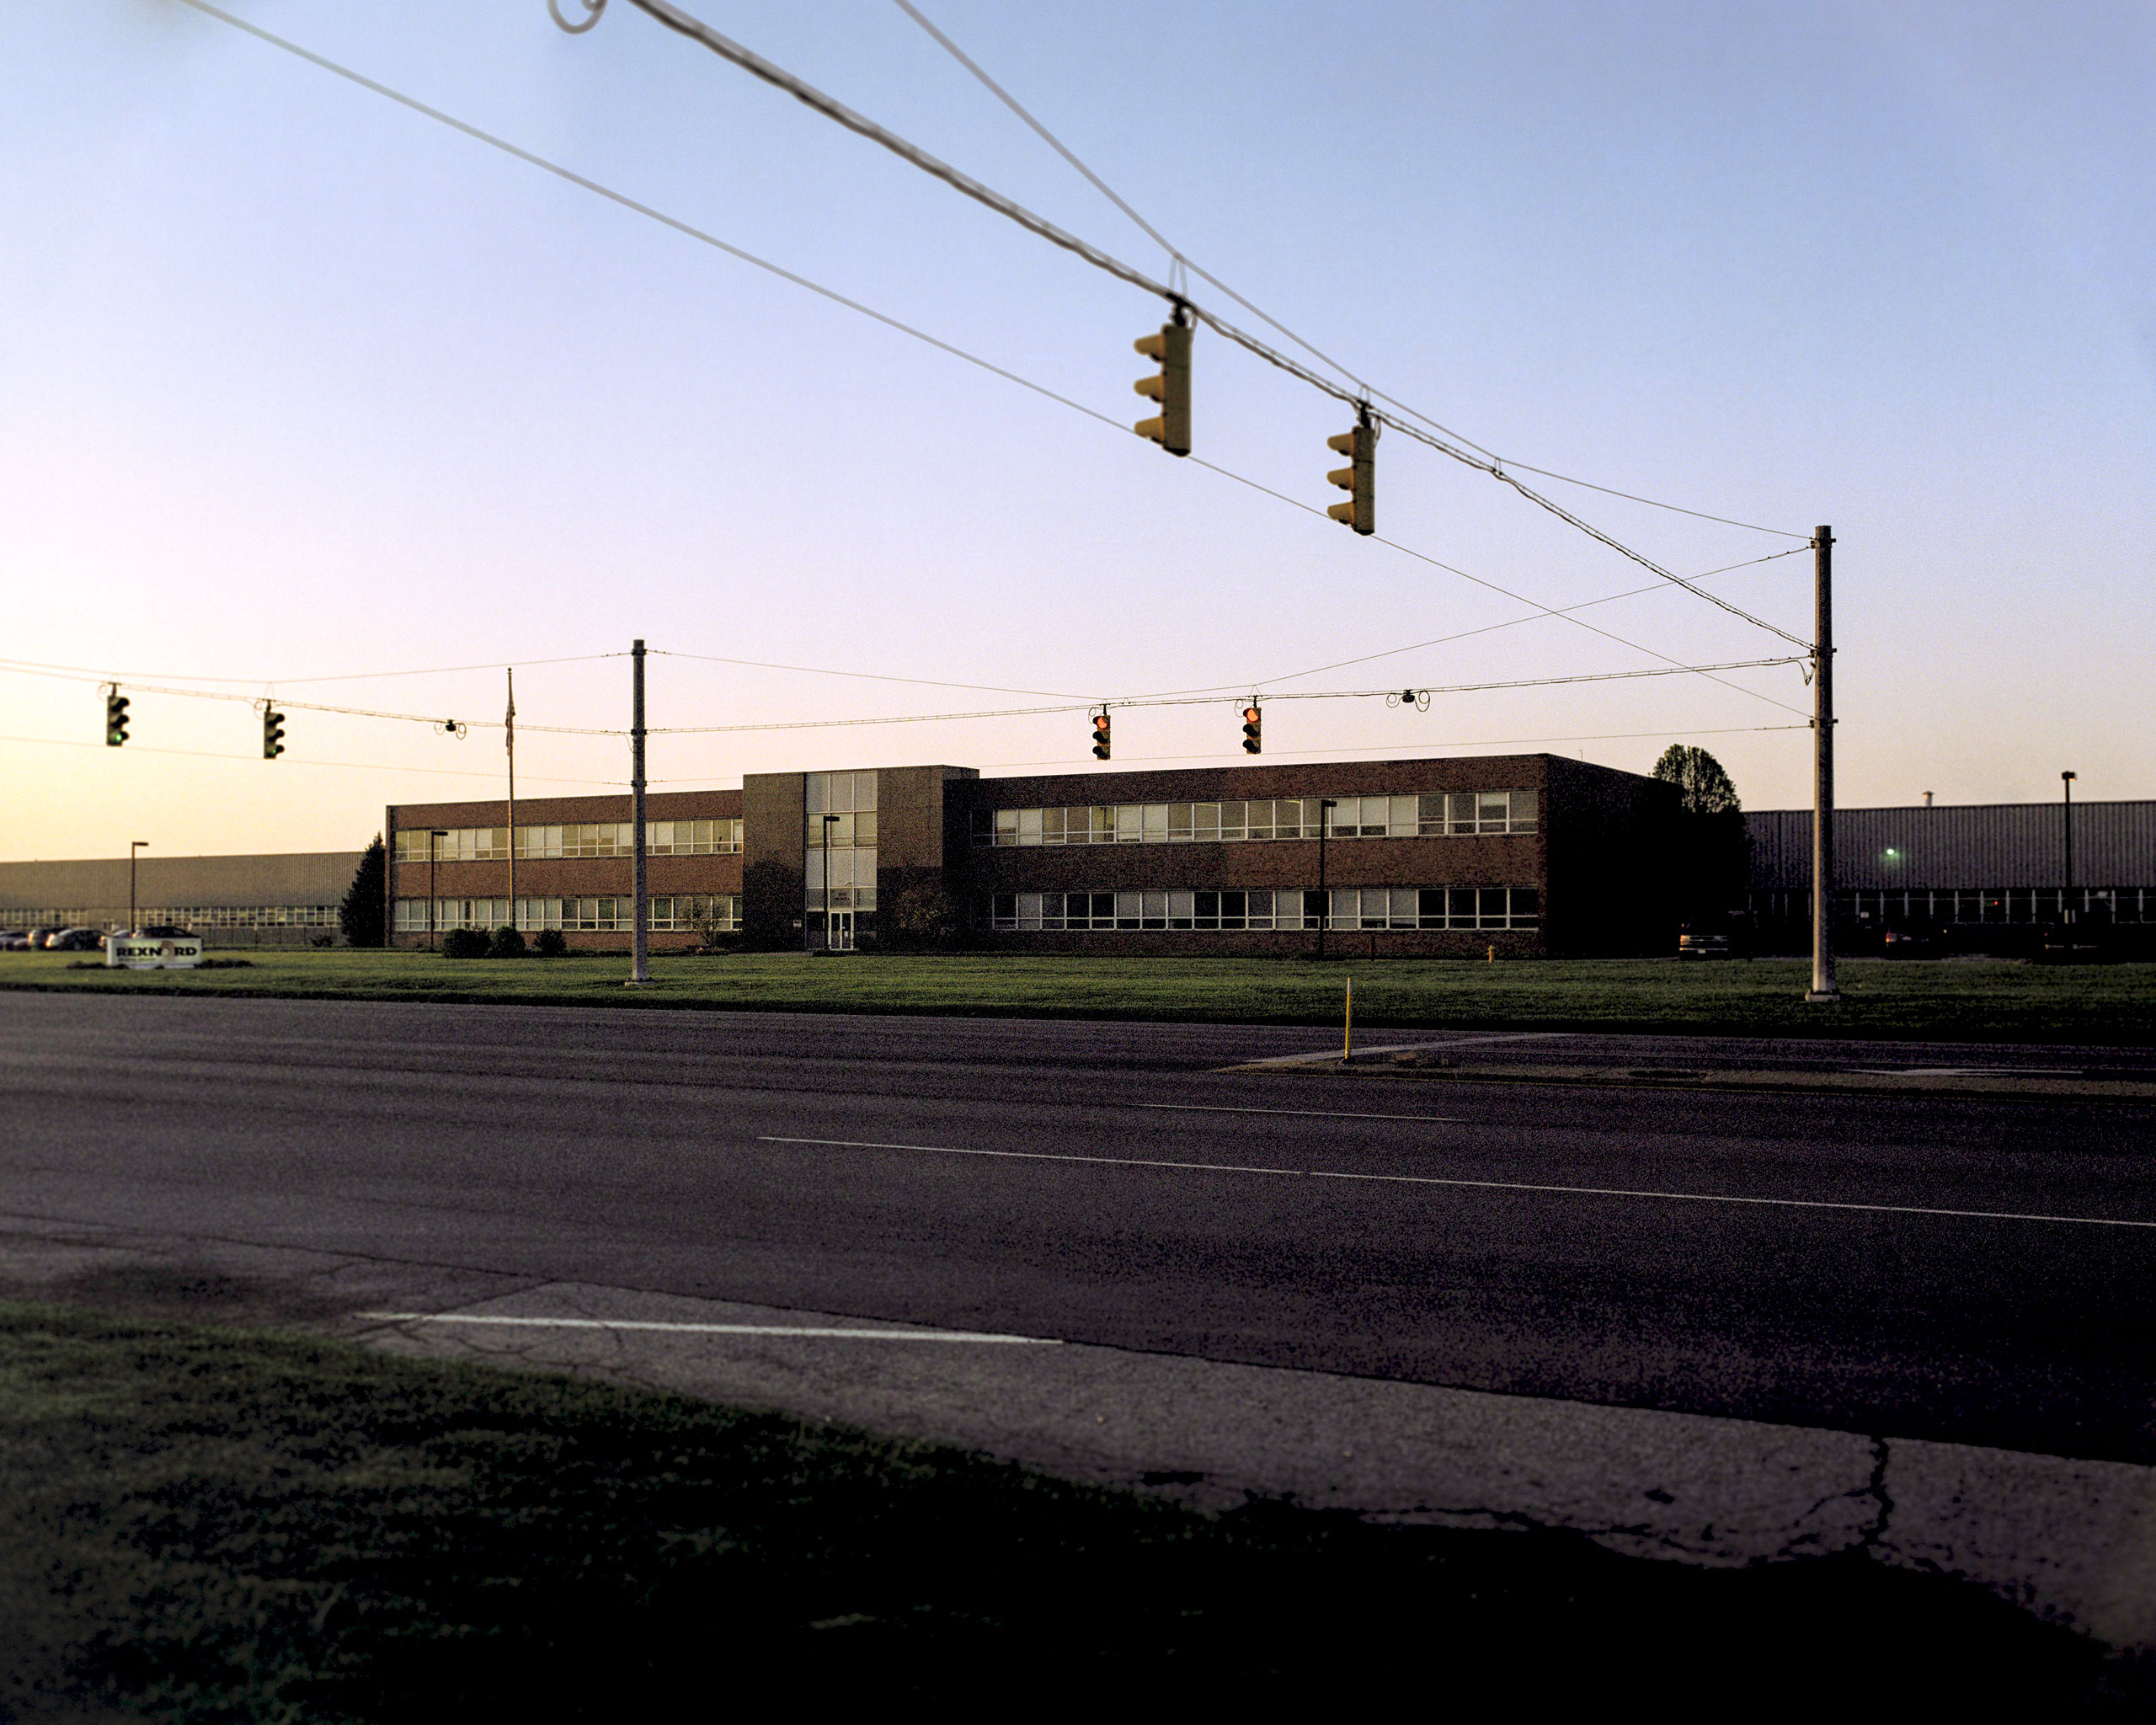 After 58 years of manufacturing bearings at this plant in west Indianapolis, Rexnord is moving its operations to Monterrey, Mexico